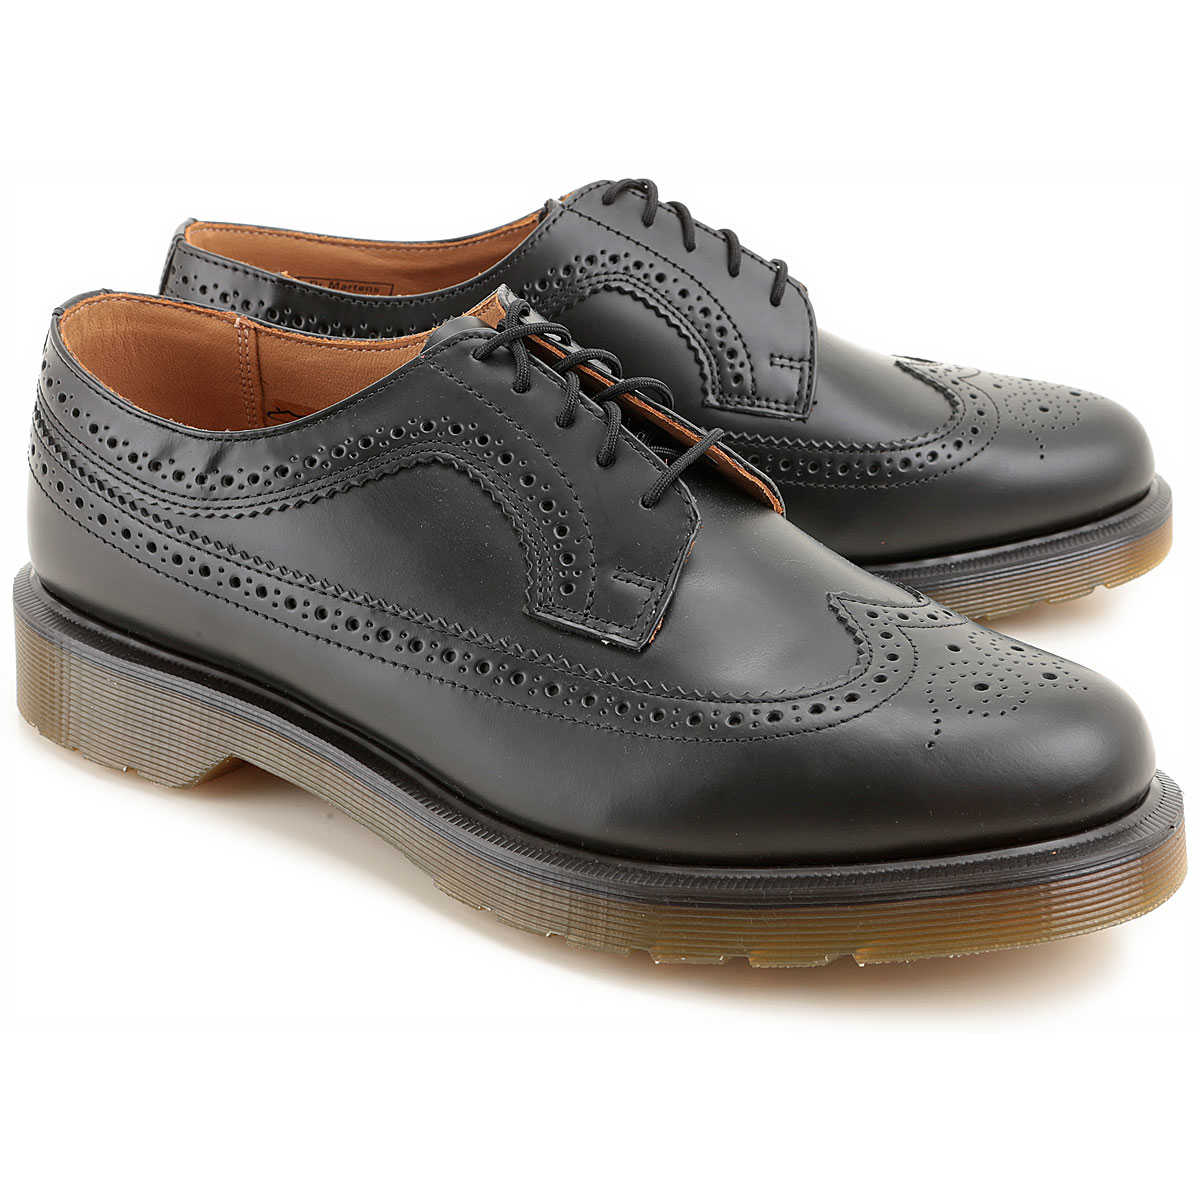 Dr. Martens Lace Up Shoes for Men Oxfords Derbies and Brogues On Sale in Outlet SE - GOOFASH